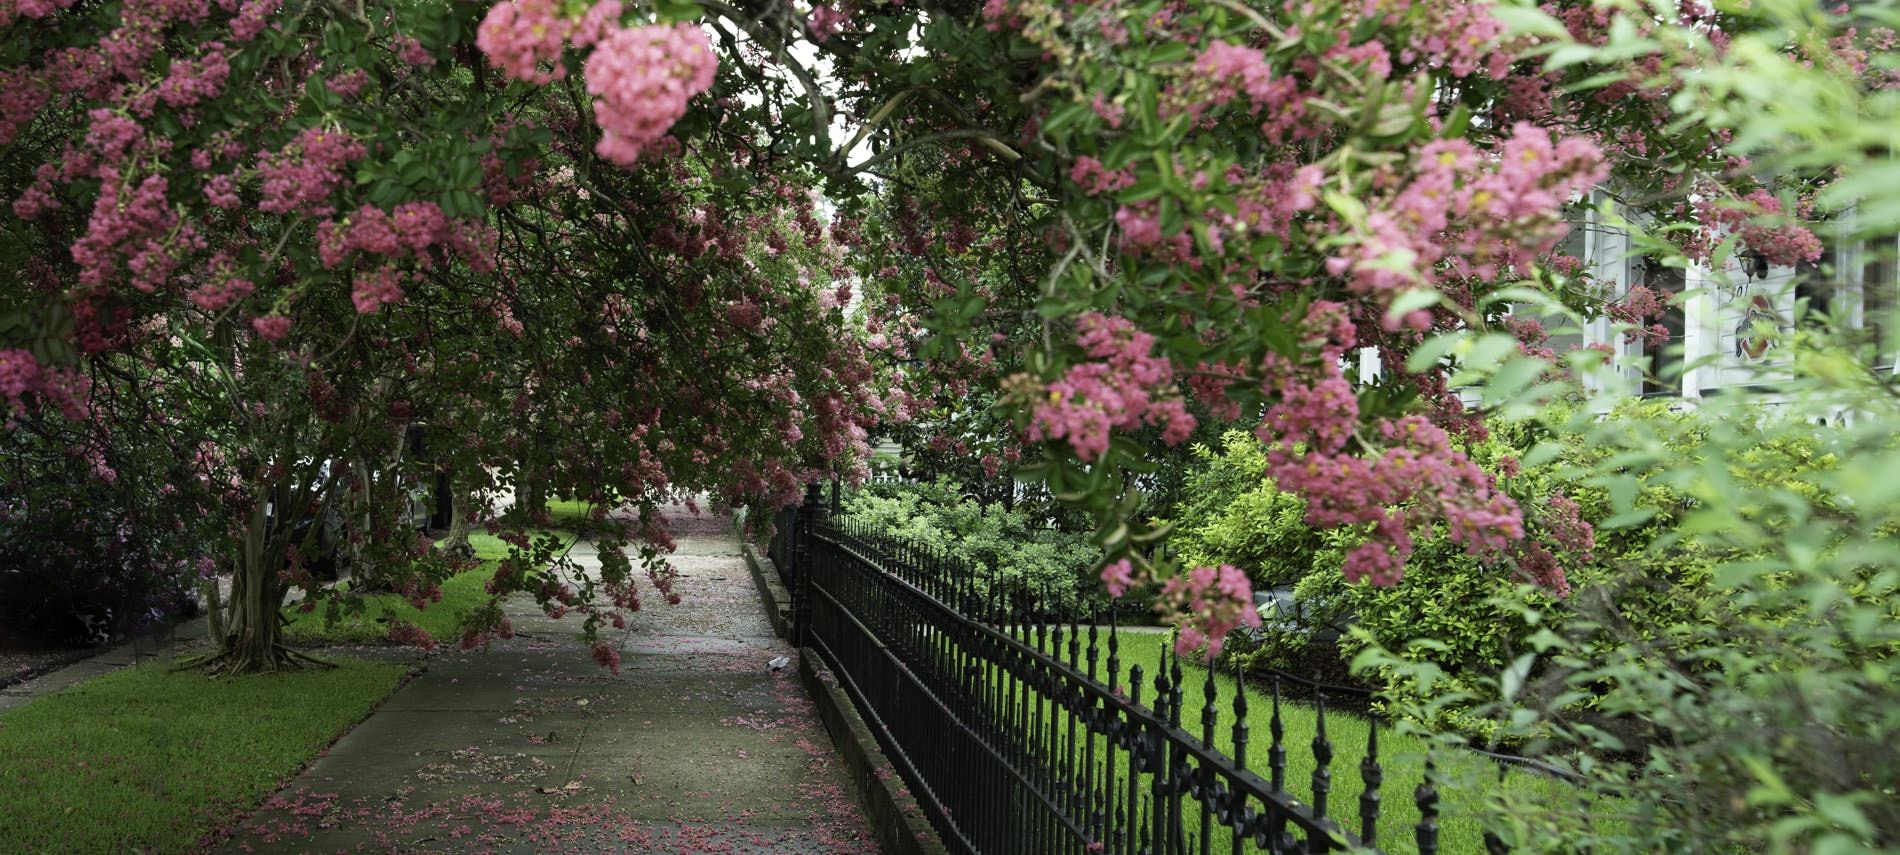 Green trees with fluffy pink flowers near gray sidewalk and rod iron fence